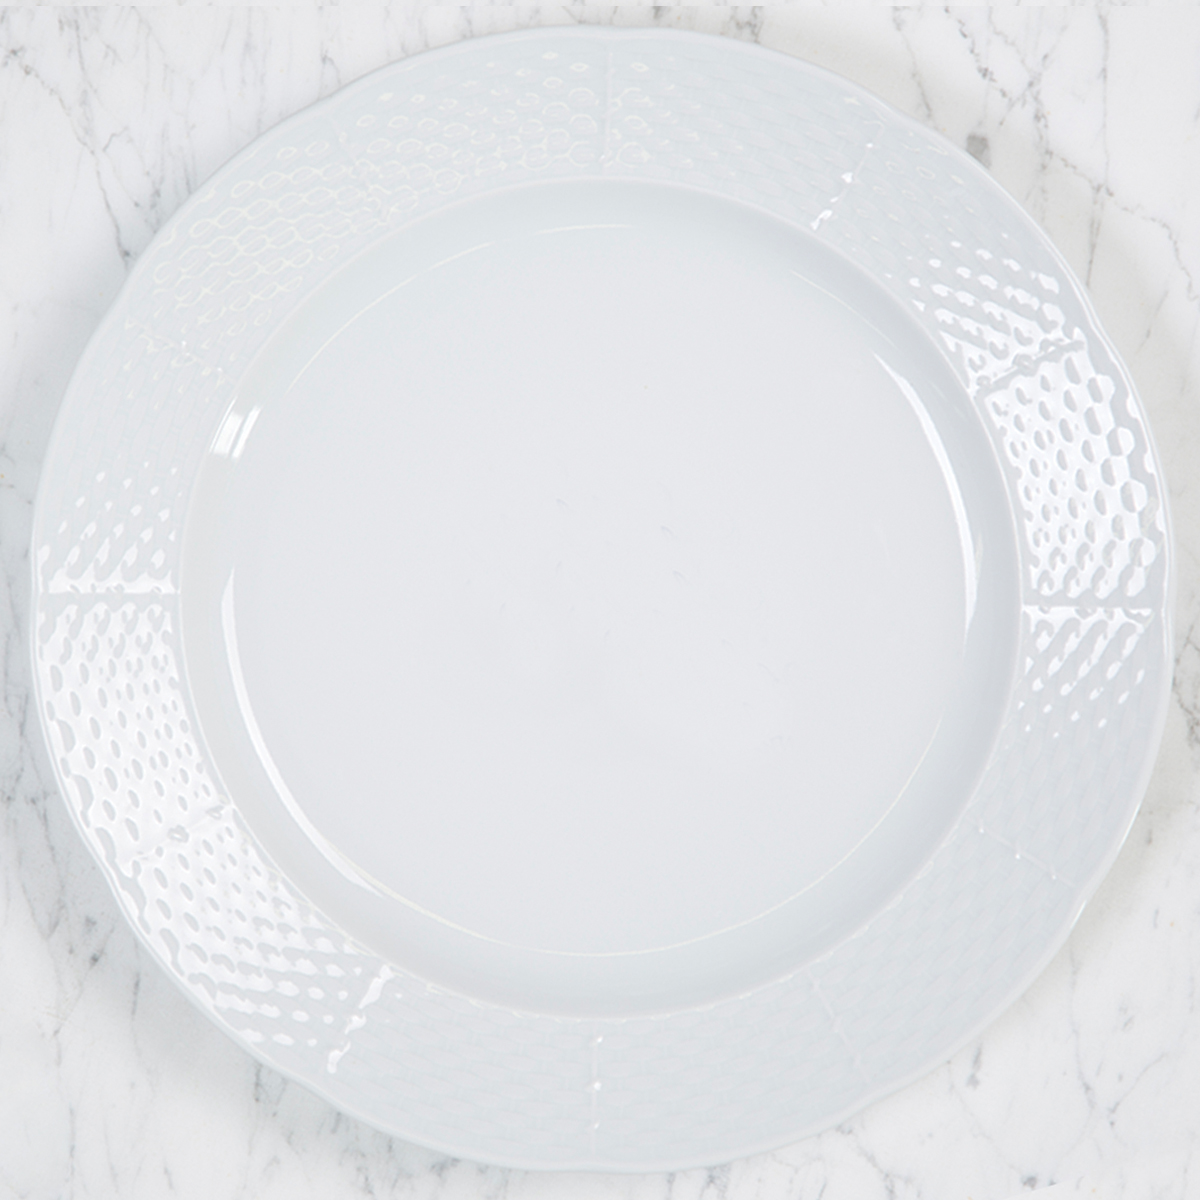 Sasha Nicholas Dinnerware Dishes Plate Dinner Wedding Registry Charger Gift Basketweave Dish Porcelain European Custom